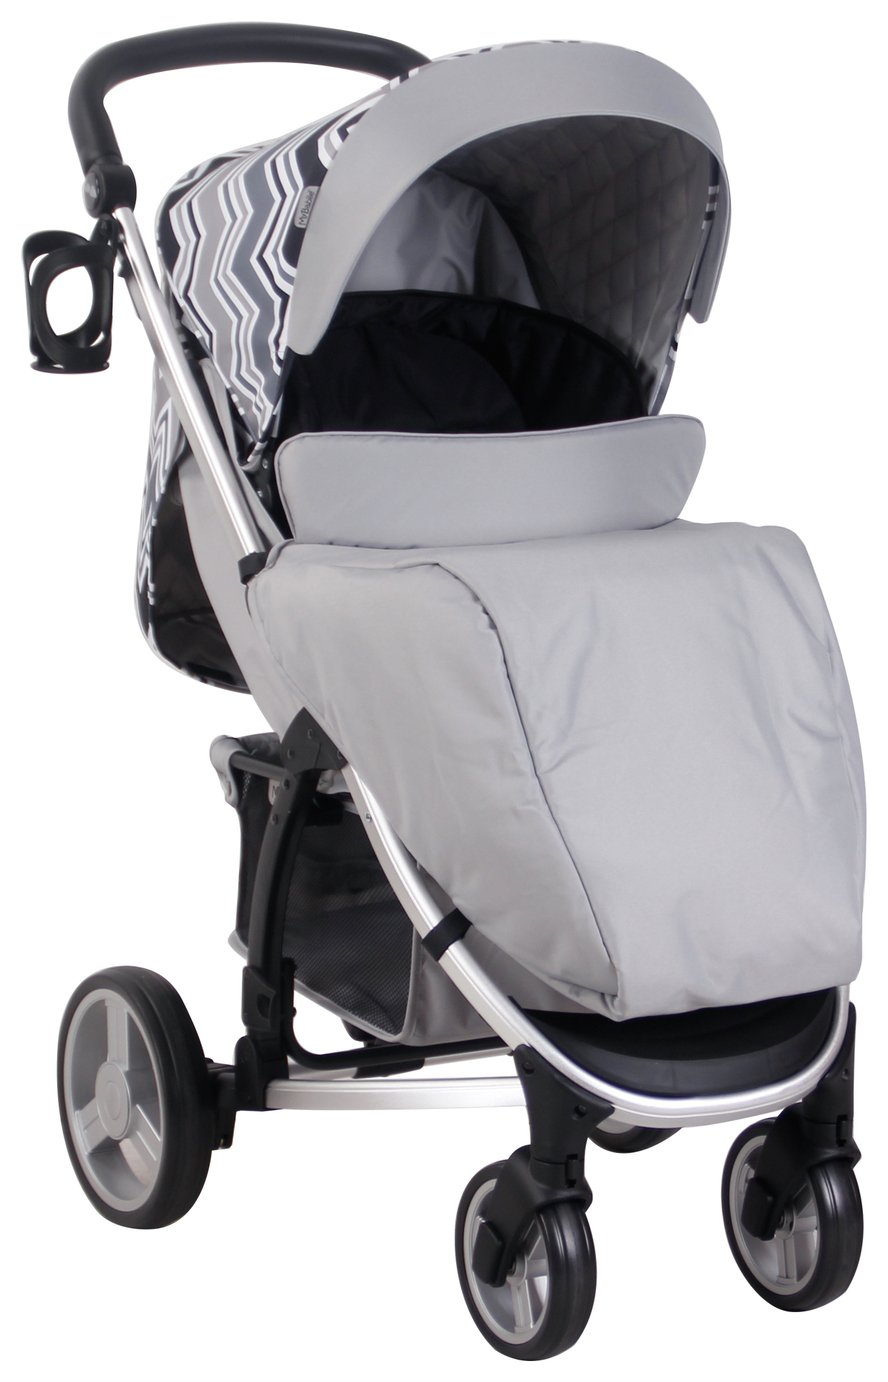 Buy Joie Litetrax 4 Wheel Stroller Chromium Pushchairs Argos